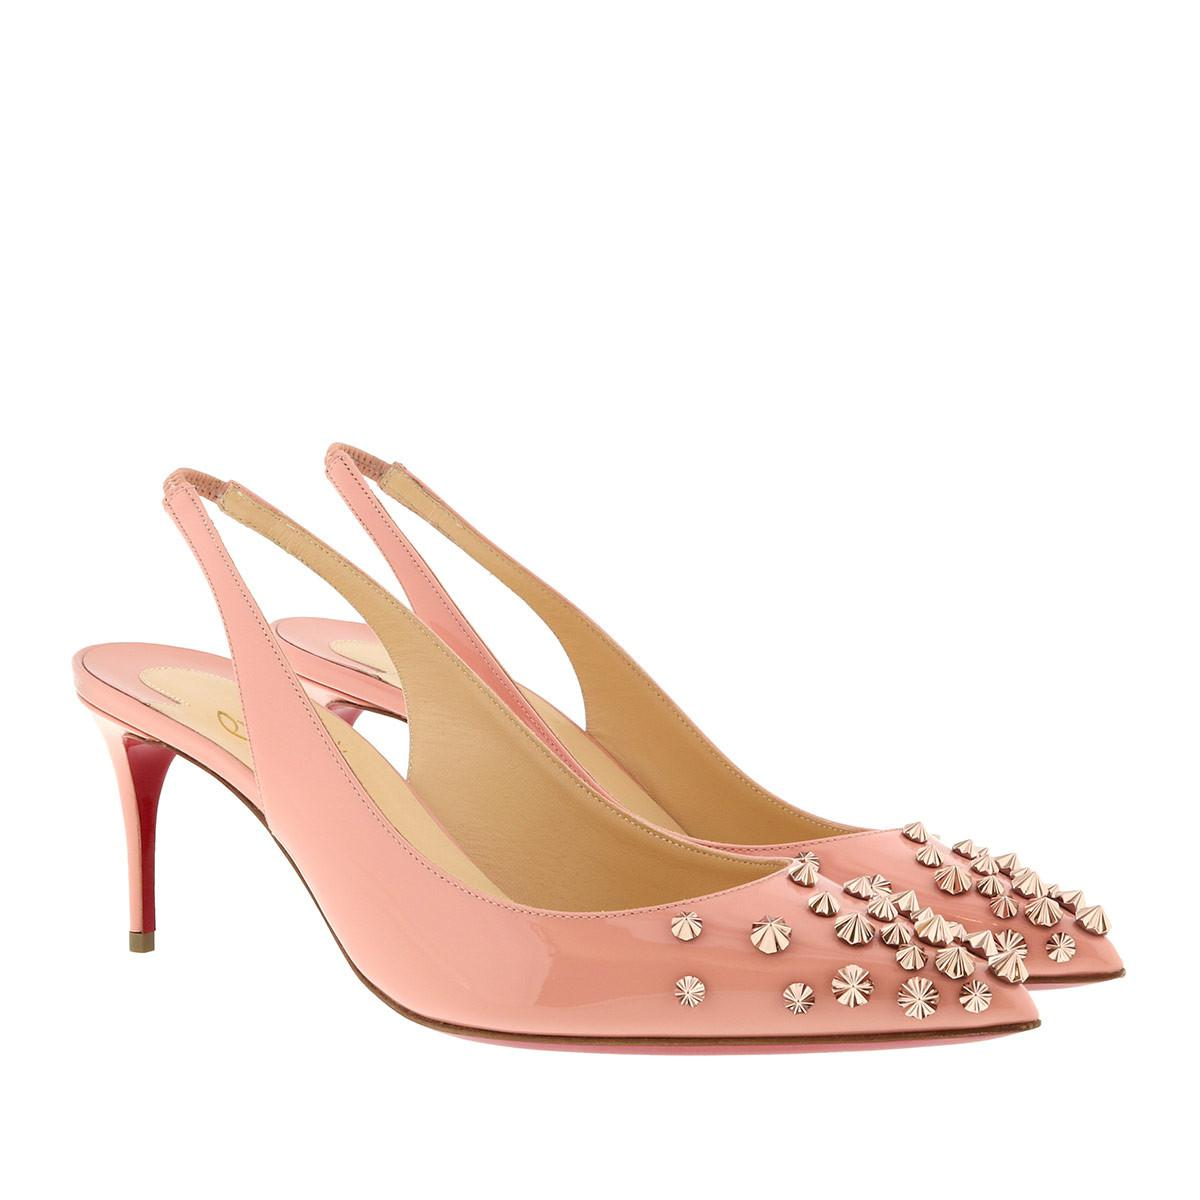 ad870cd6a729 Christian Louboutin. Women s Pink Drama 70 Stud Embellished Patent Leather  Court Shoes